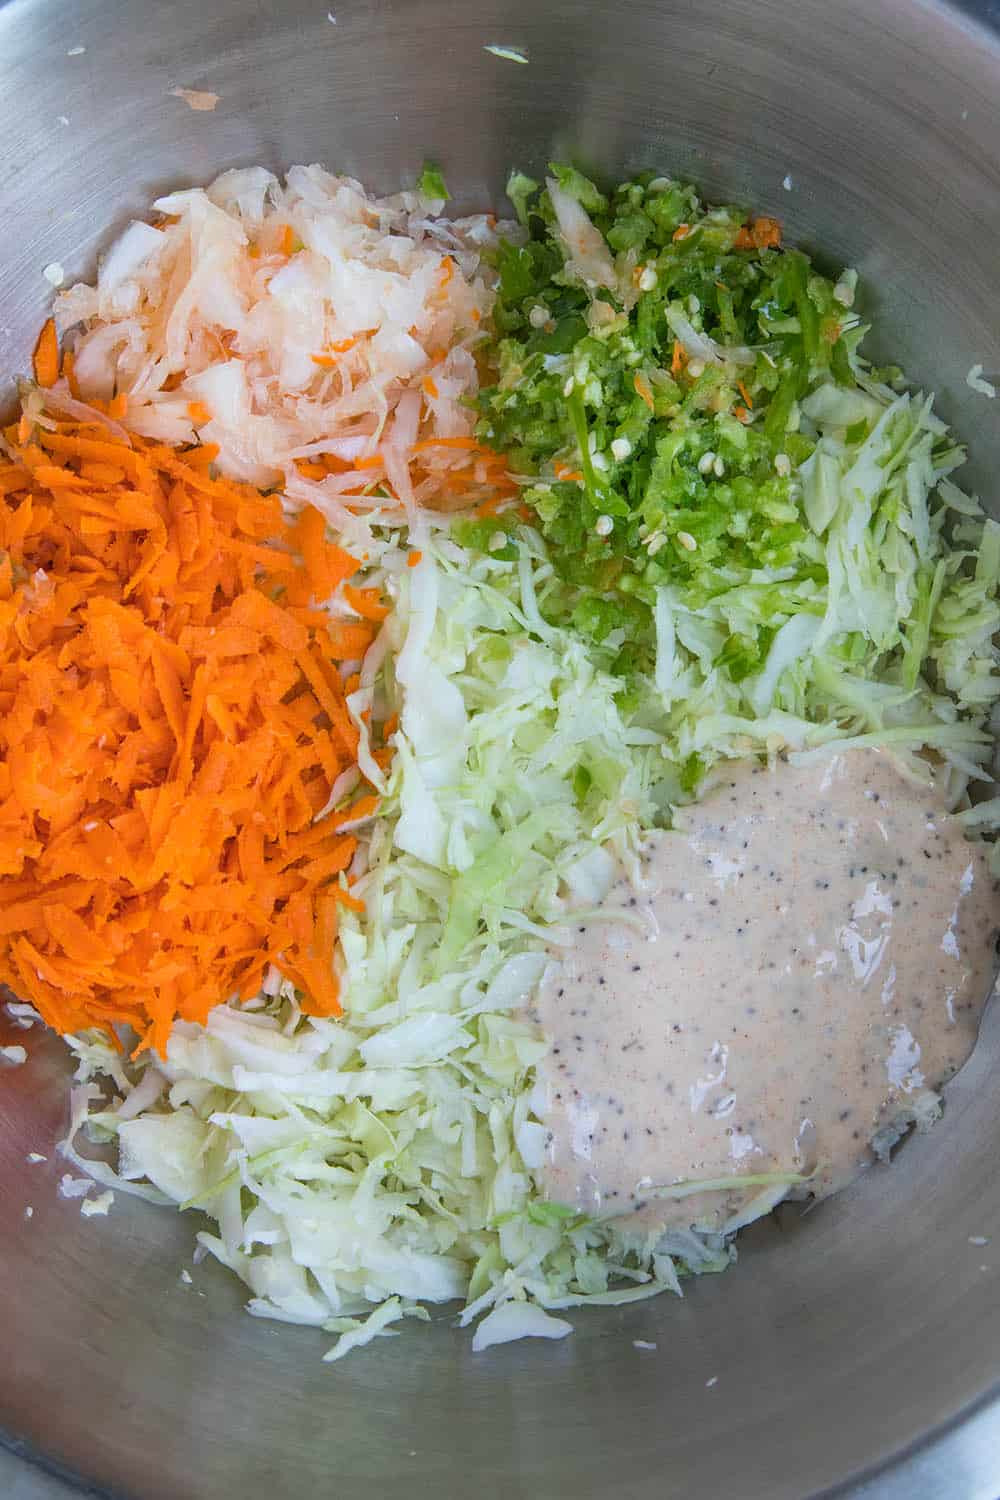 The start of our spicy, creamy coleslaw